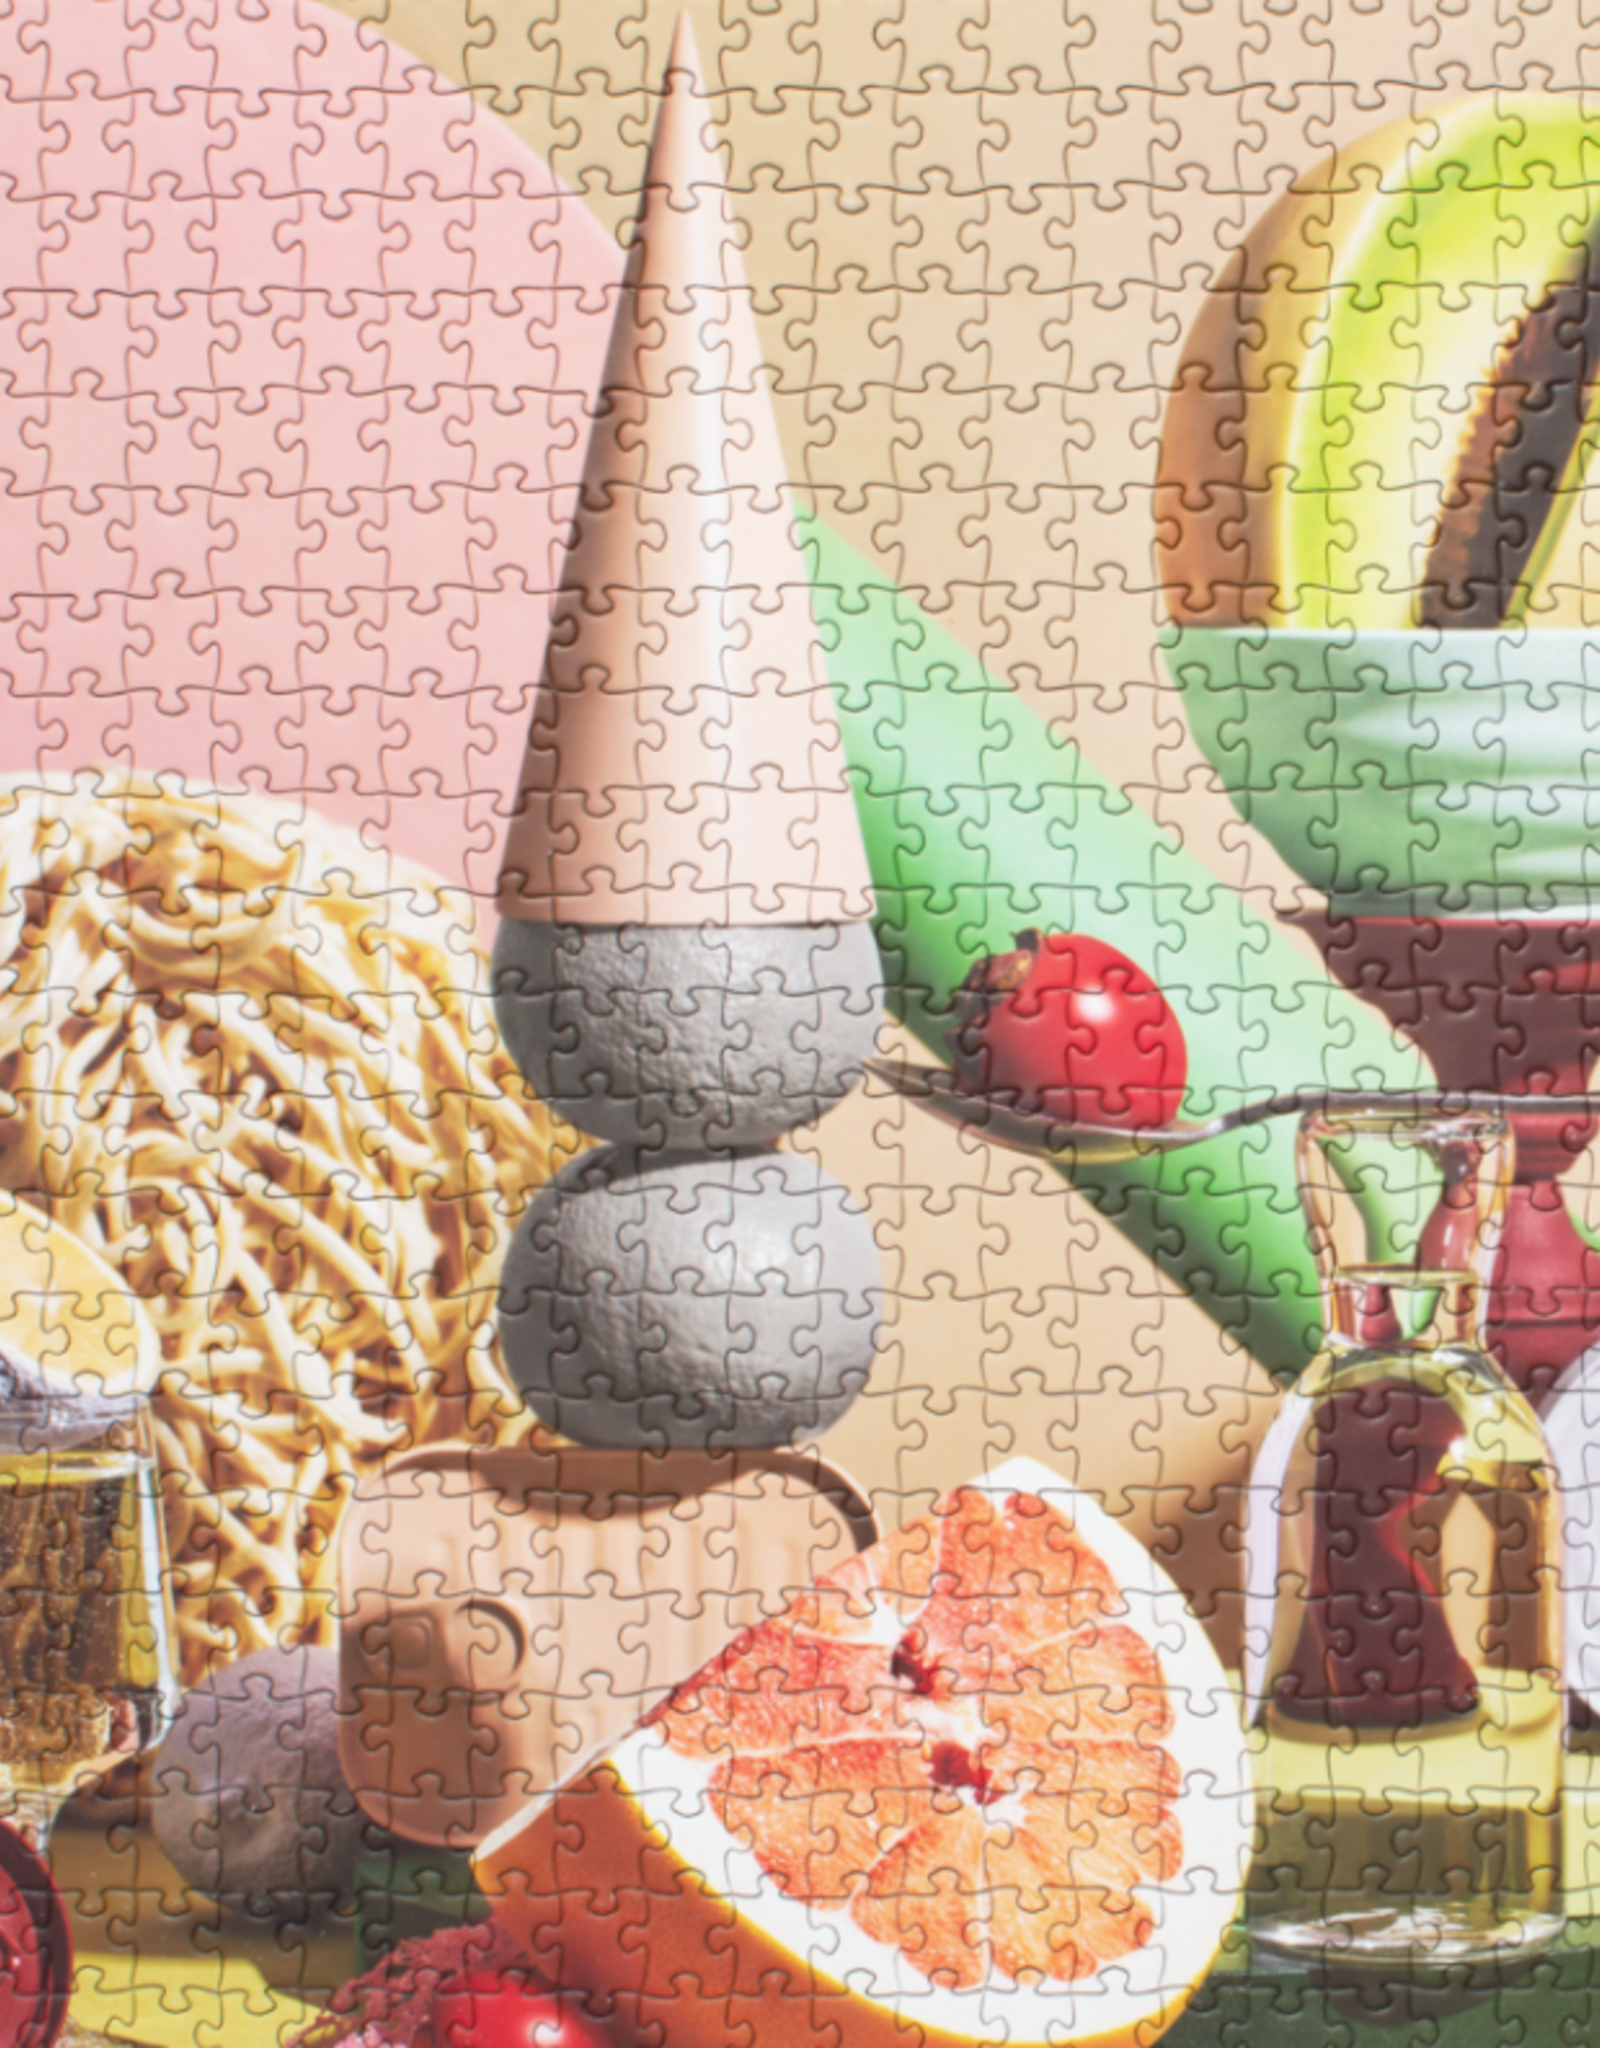 Food for Thought Puzzle